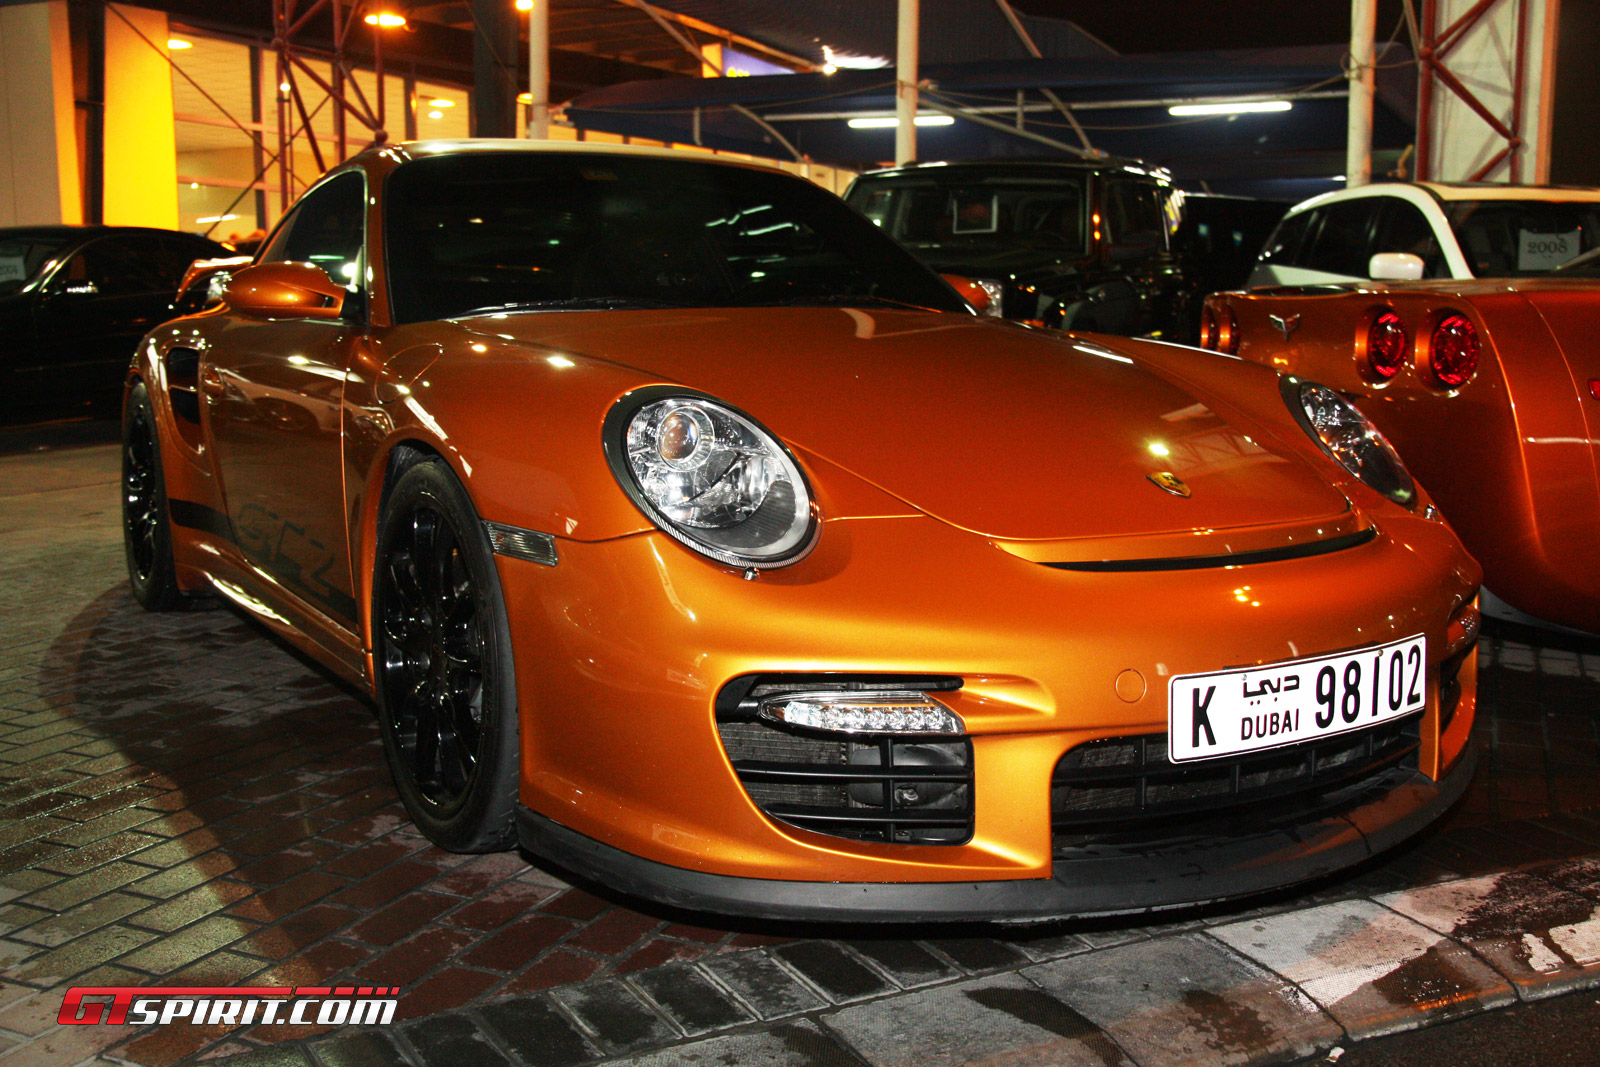 This 997 GT2 is currently for